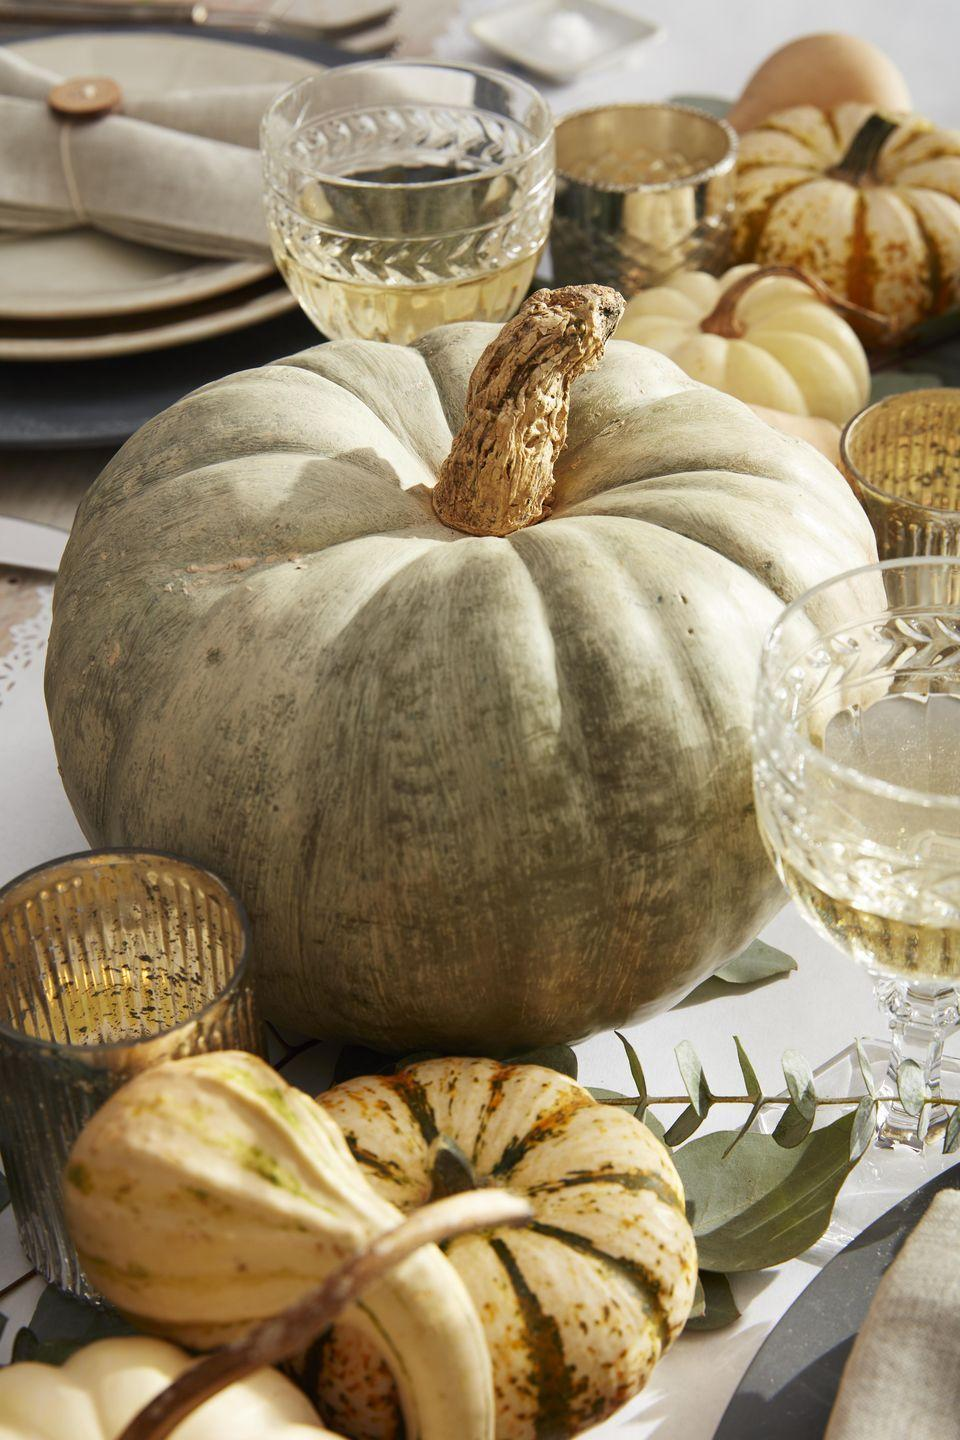 """<p>Five minutes and done! Paint a green or tan heirloom pumpkin with off-white acrylic paint and voila. Sophistication!</p><p><a class=""""link rapid-noclick-resp"""" href=""""https://www.amazon.com/Delta-Creative-Ceramcoat-Acrylic-Assorted/dp/B00A2CHV76/ref=sr_1_1?tag=syn-yahoo-20&ascsubtag=%5Bartid%7C10050.g.2130%5Bsrc%7Cyahoo-us"""" rel=""""nofollow noopener"""" target=""""_blank"""" data-ylk=""""slk:SHOP PAINT"""">SHOP PAINT</a></p>"""